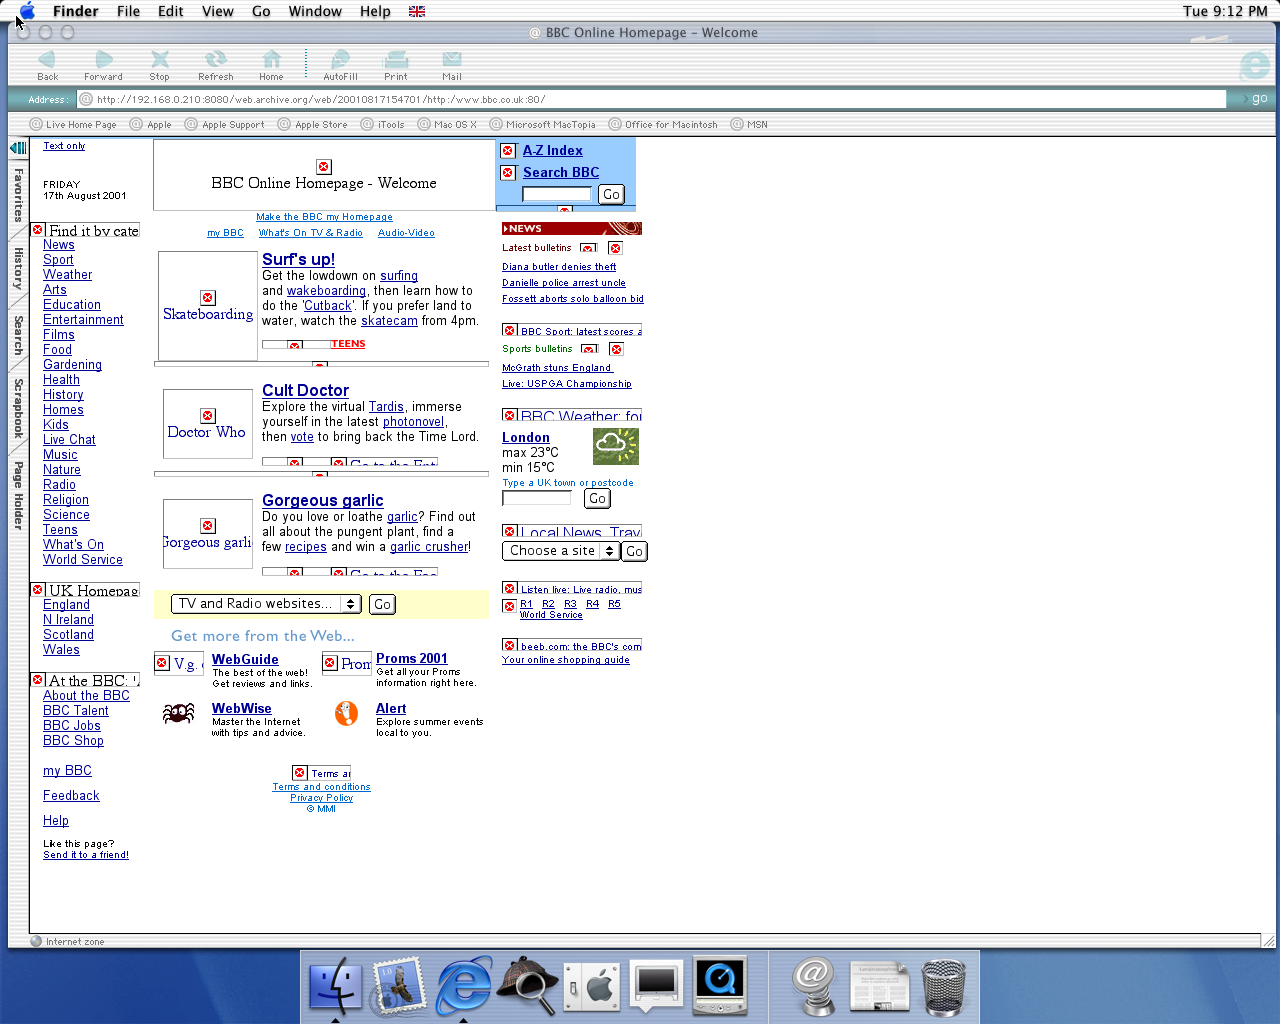 OS X 10.0 PPC with Microsoft Internet Explorer 5.1 for Mac Preview displaying a page from BBC.co.uk archived at August 17, 2001 at 15:47:01